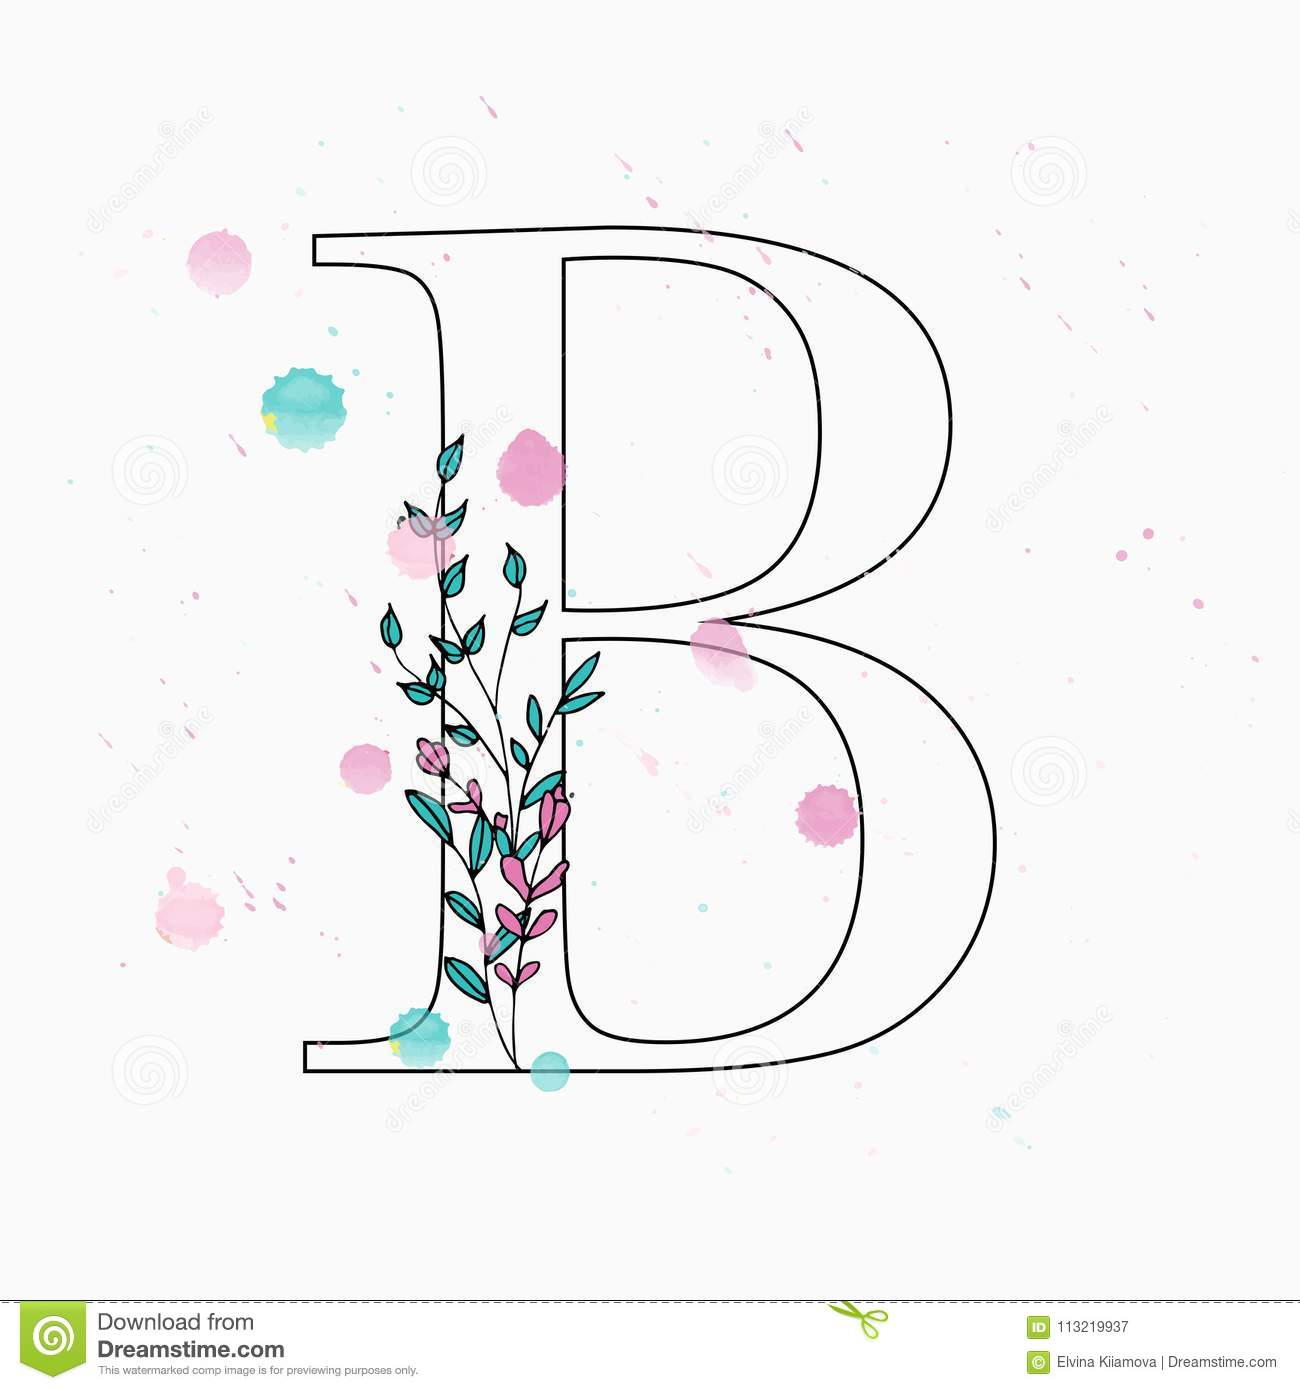 B Letter Hand Drawn Floral Alphabet With Watercolor Drops Stock Illustration Illustration Of Drawing Romantic 113219937